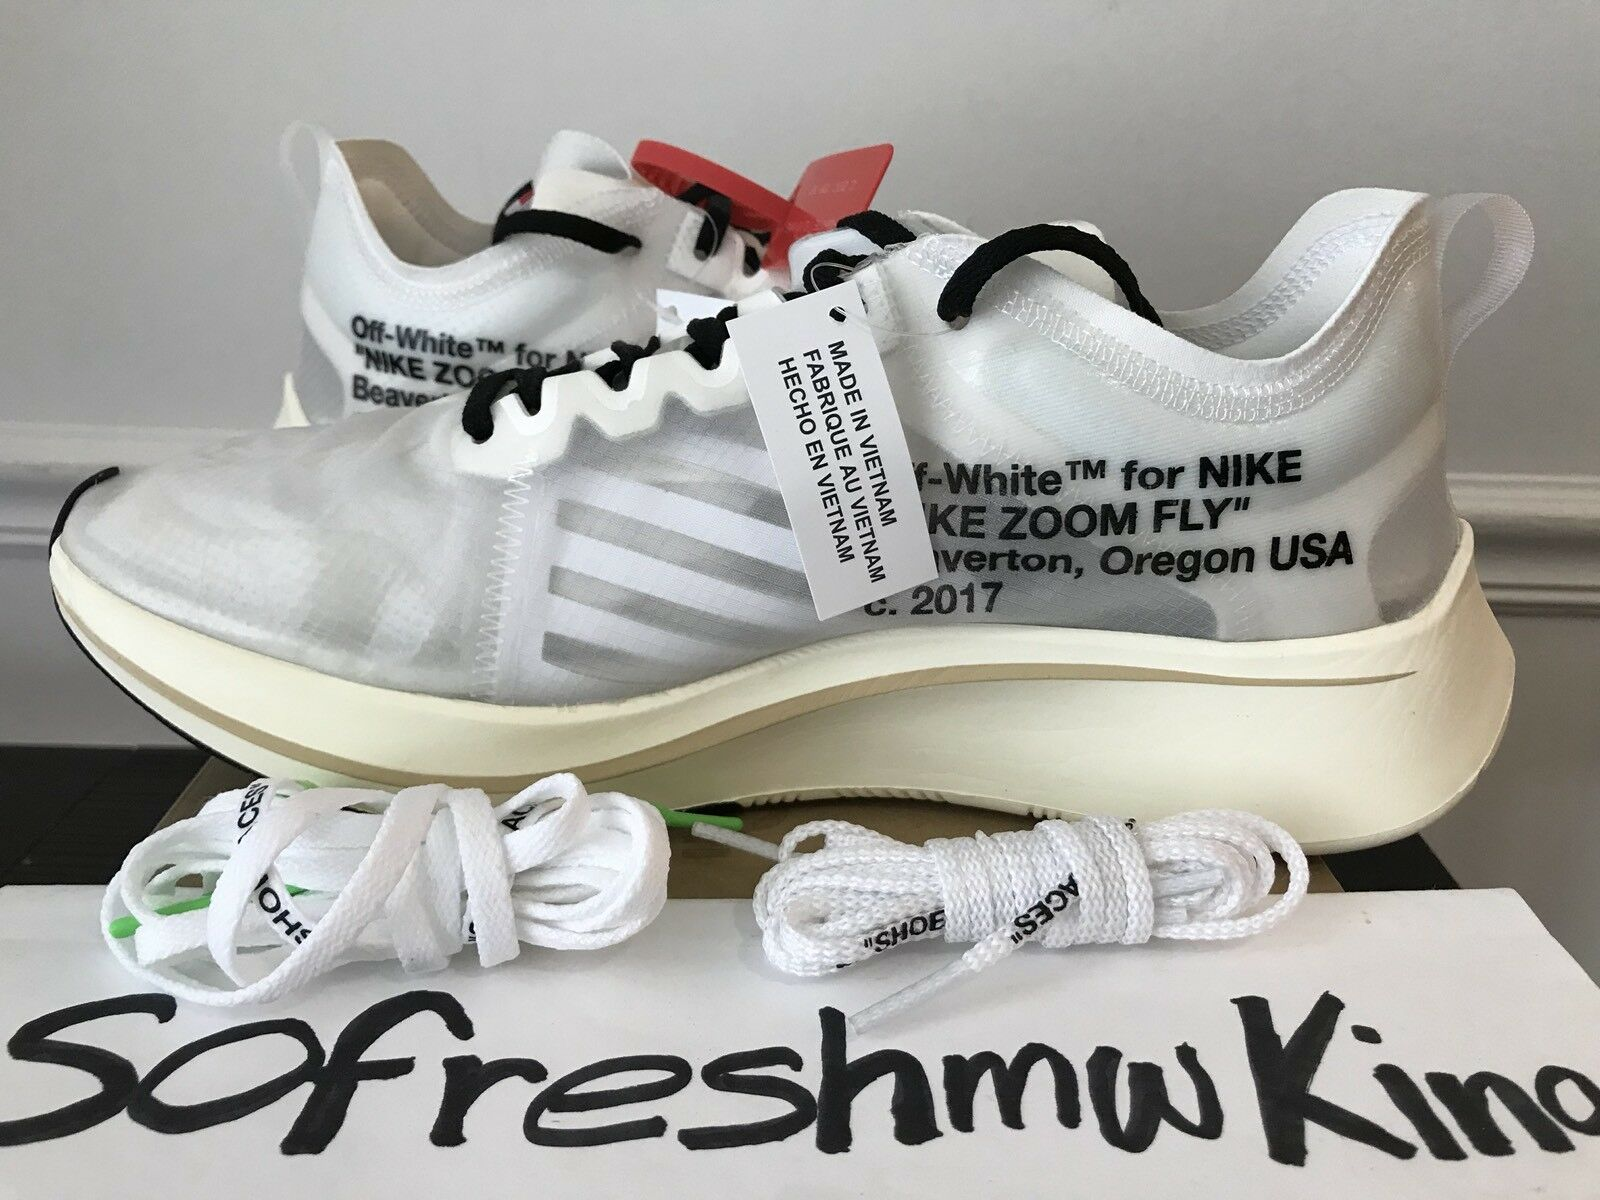 huge discount 58acd 44ffd Unc Nike Off White Zoom Fly Sz 10.5 10.5 10.5 Brand New AJ4588-100 !